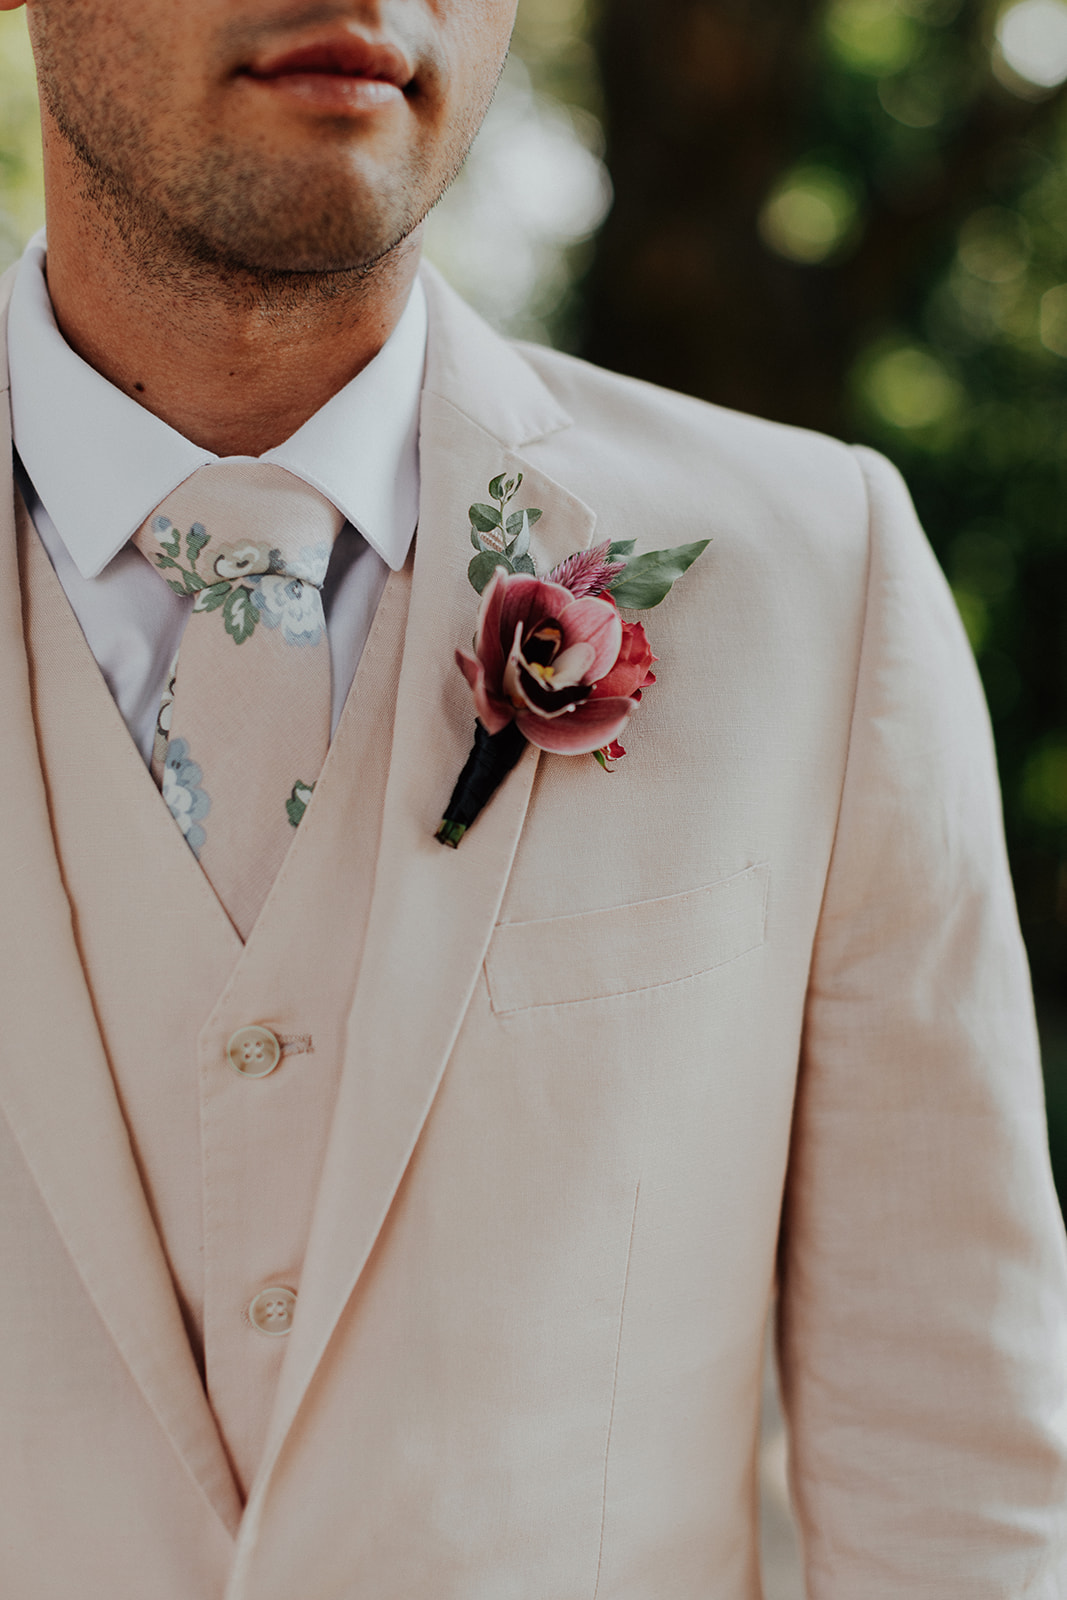 Bridesman boutonniere looking handsome against a pale pink suit. Healdsburg wedding florist, Venn Floral, at Ru's Farm photographed by Logan Cole.